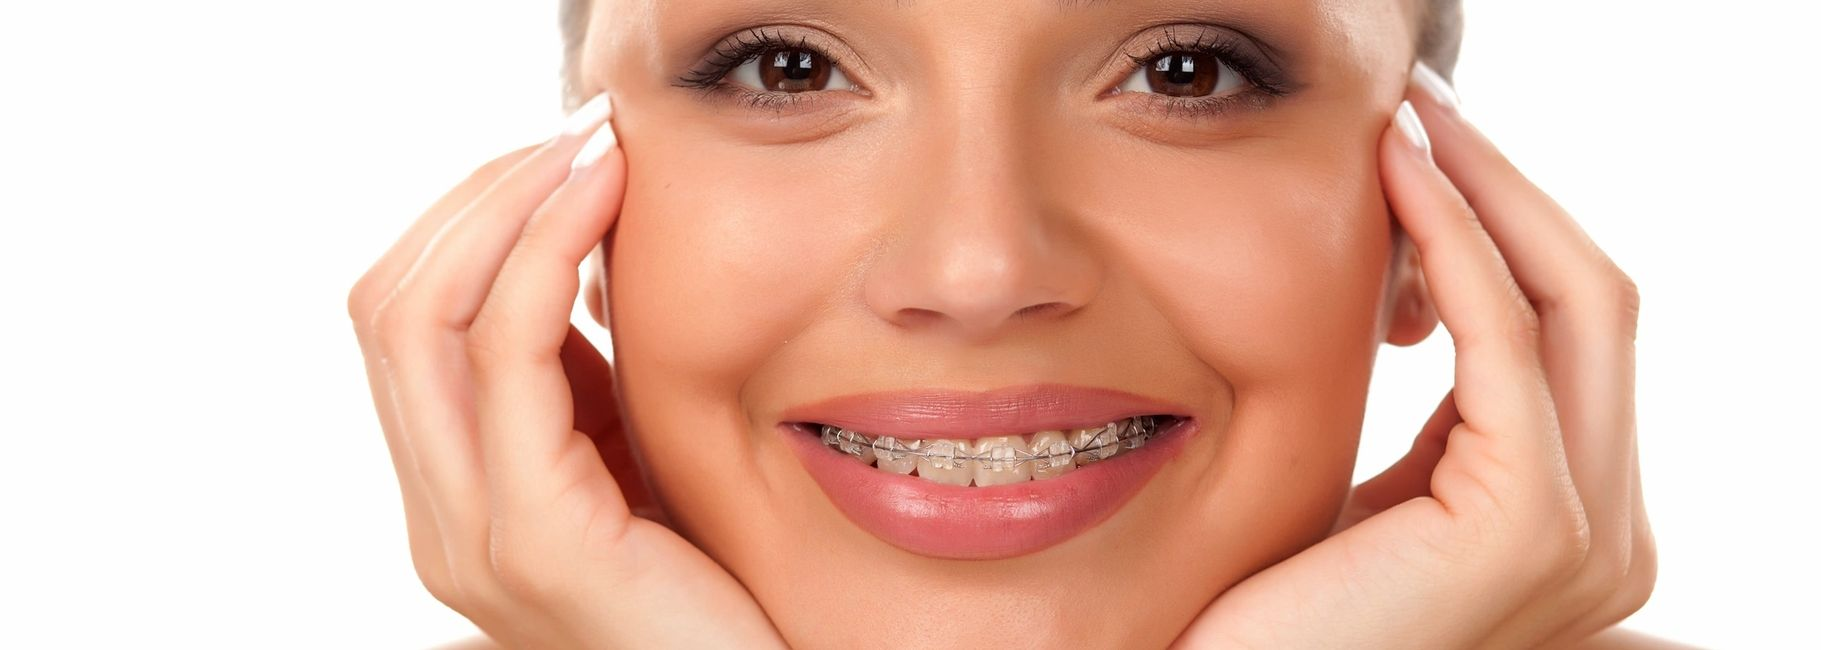 Ceramic braces helping to create a beautiful smile!